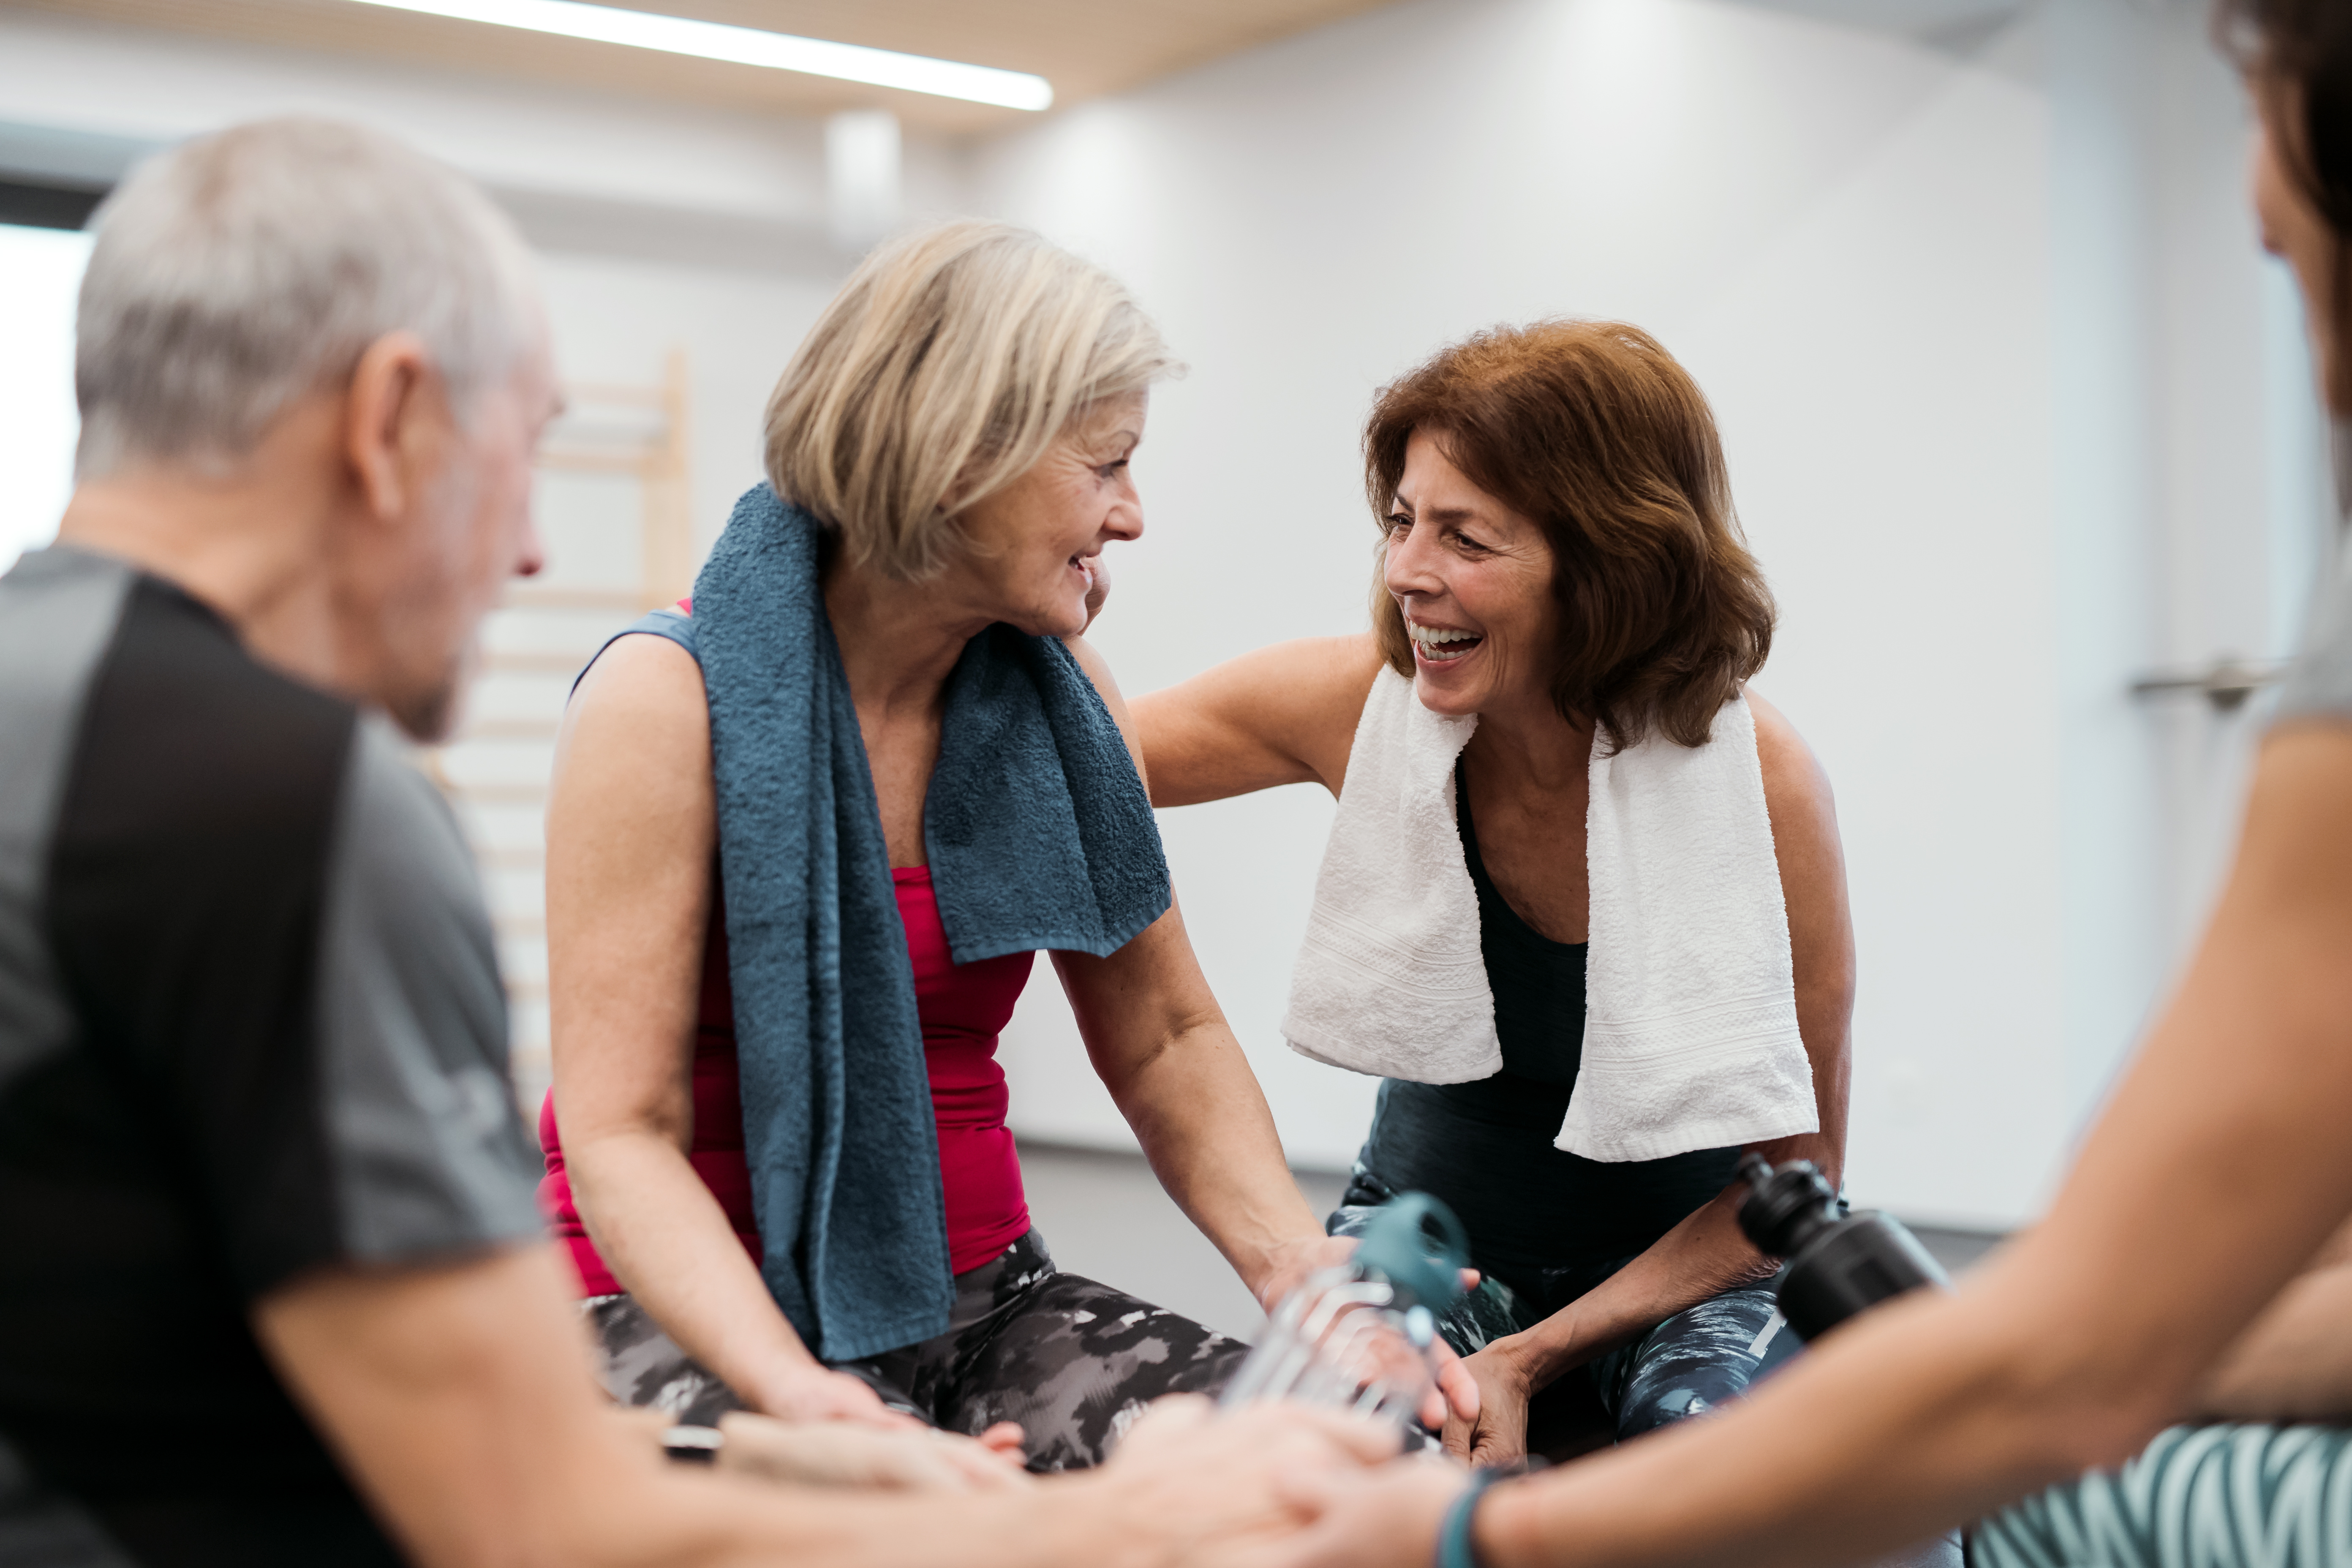 Creating community spaces for patient wellbeing